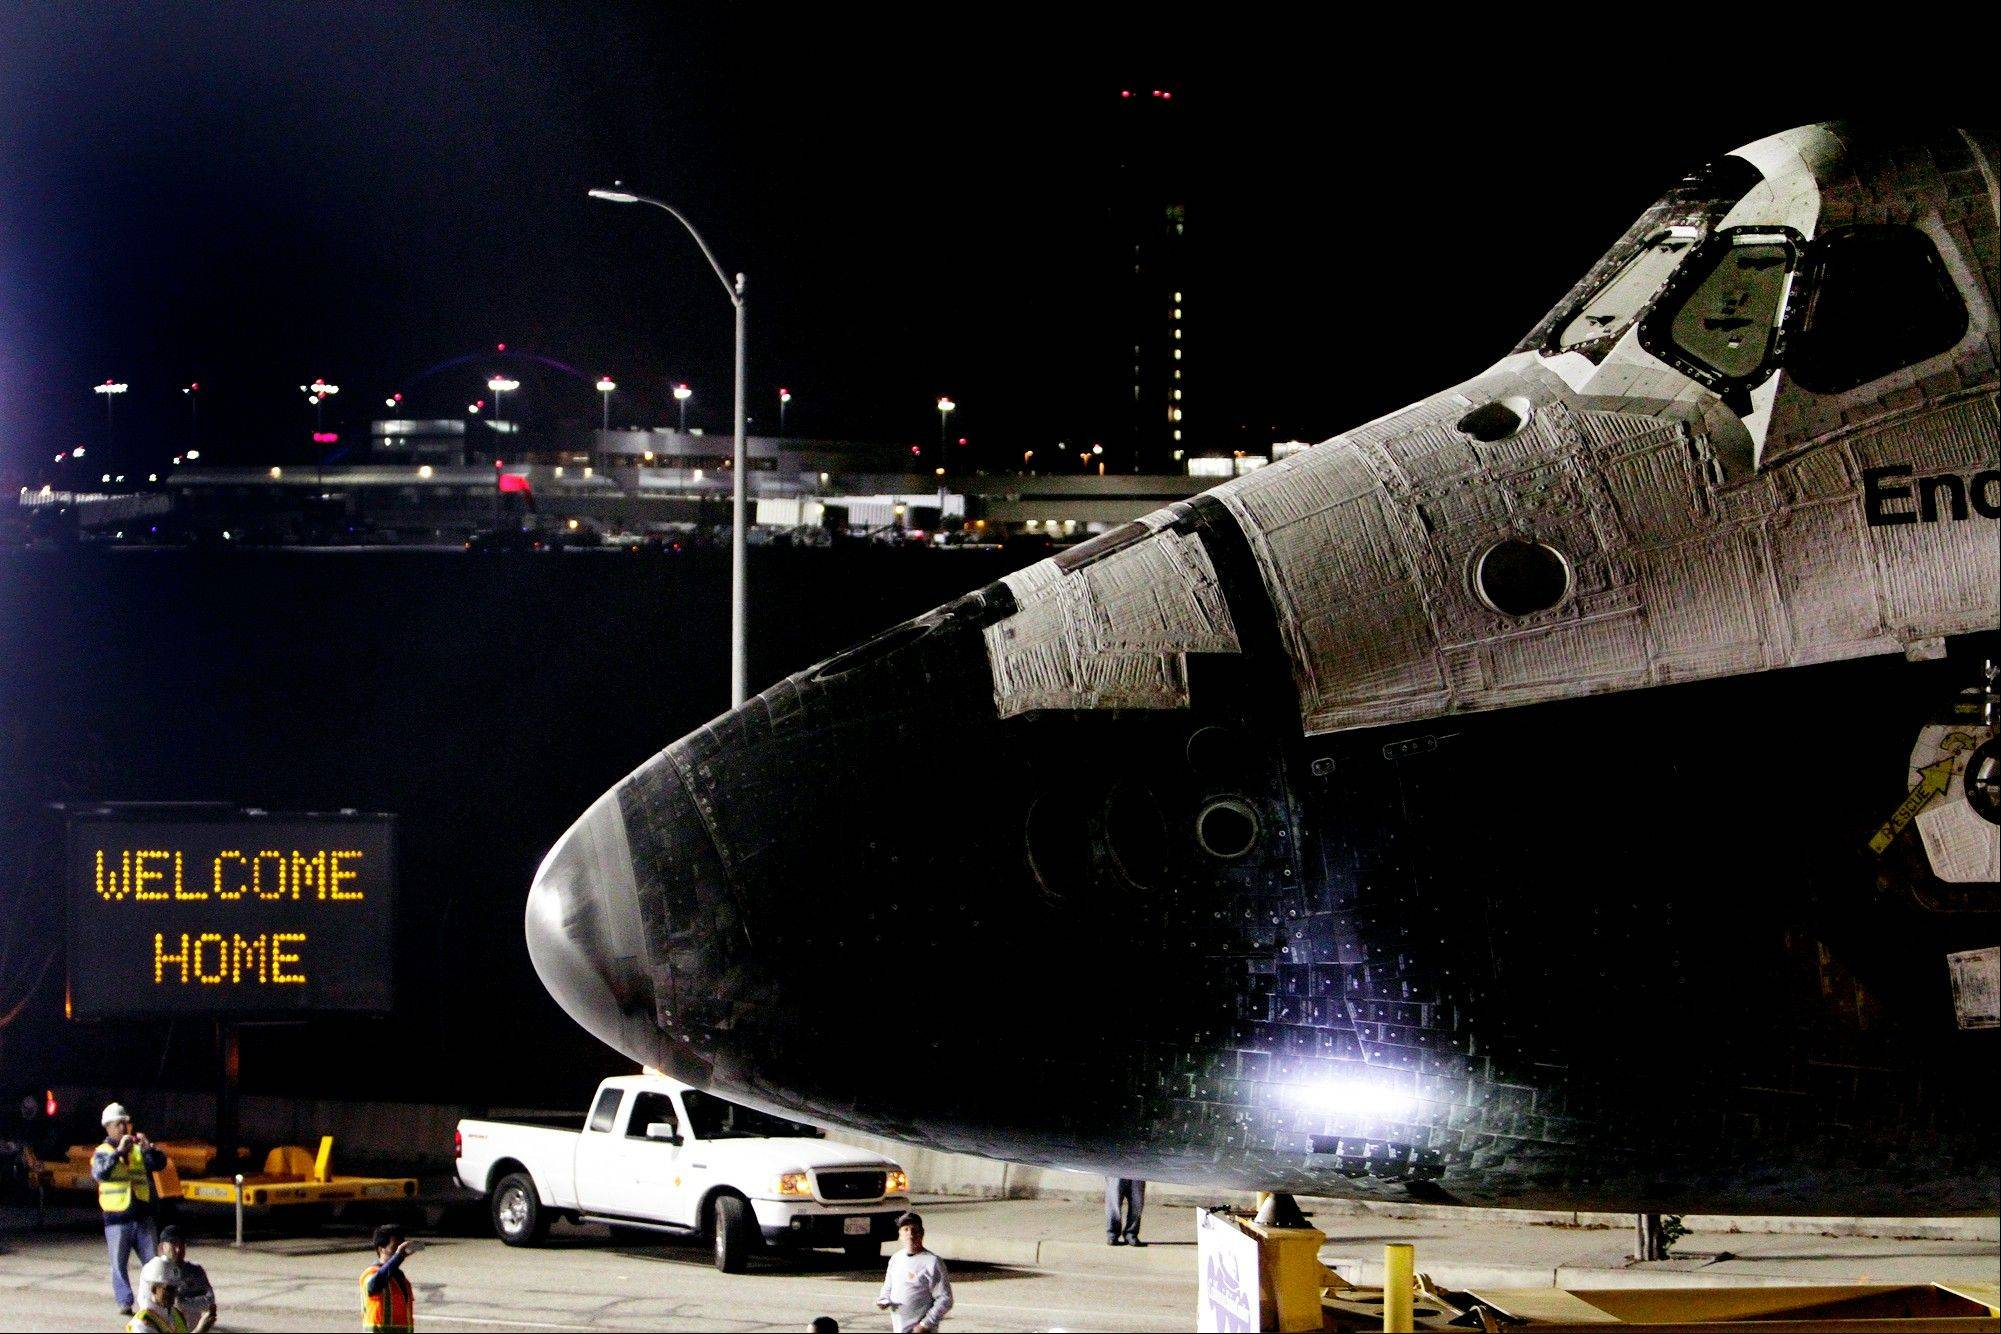 A welcome home sign is displayed on the turn as space shuttle Endeavour leaves a hanger at Los Angeles International Airport en route to the California Science Center in Los Angeles Friday, Oct. 12, 2012. Endeavour's 12-mile road trip to its ultimate destination kicked off shortly before midnight Thursday.